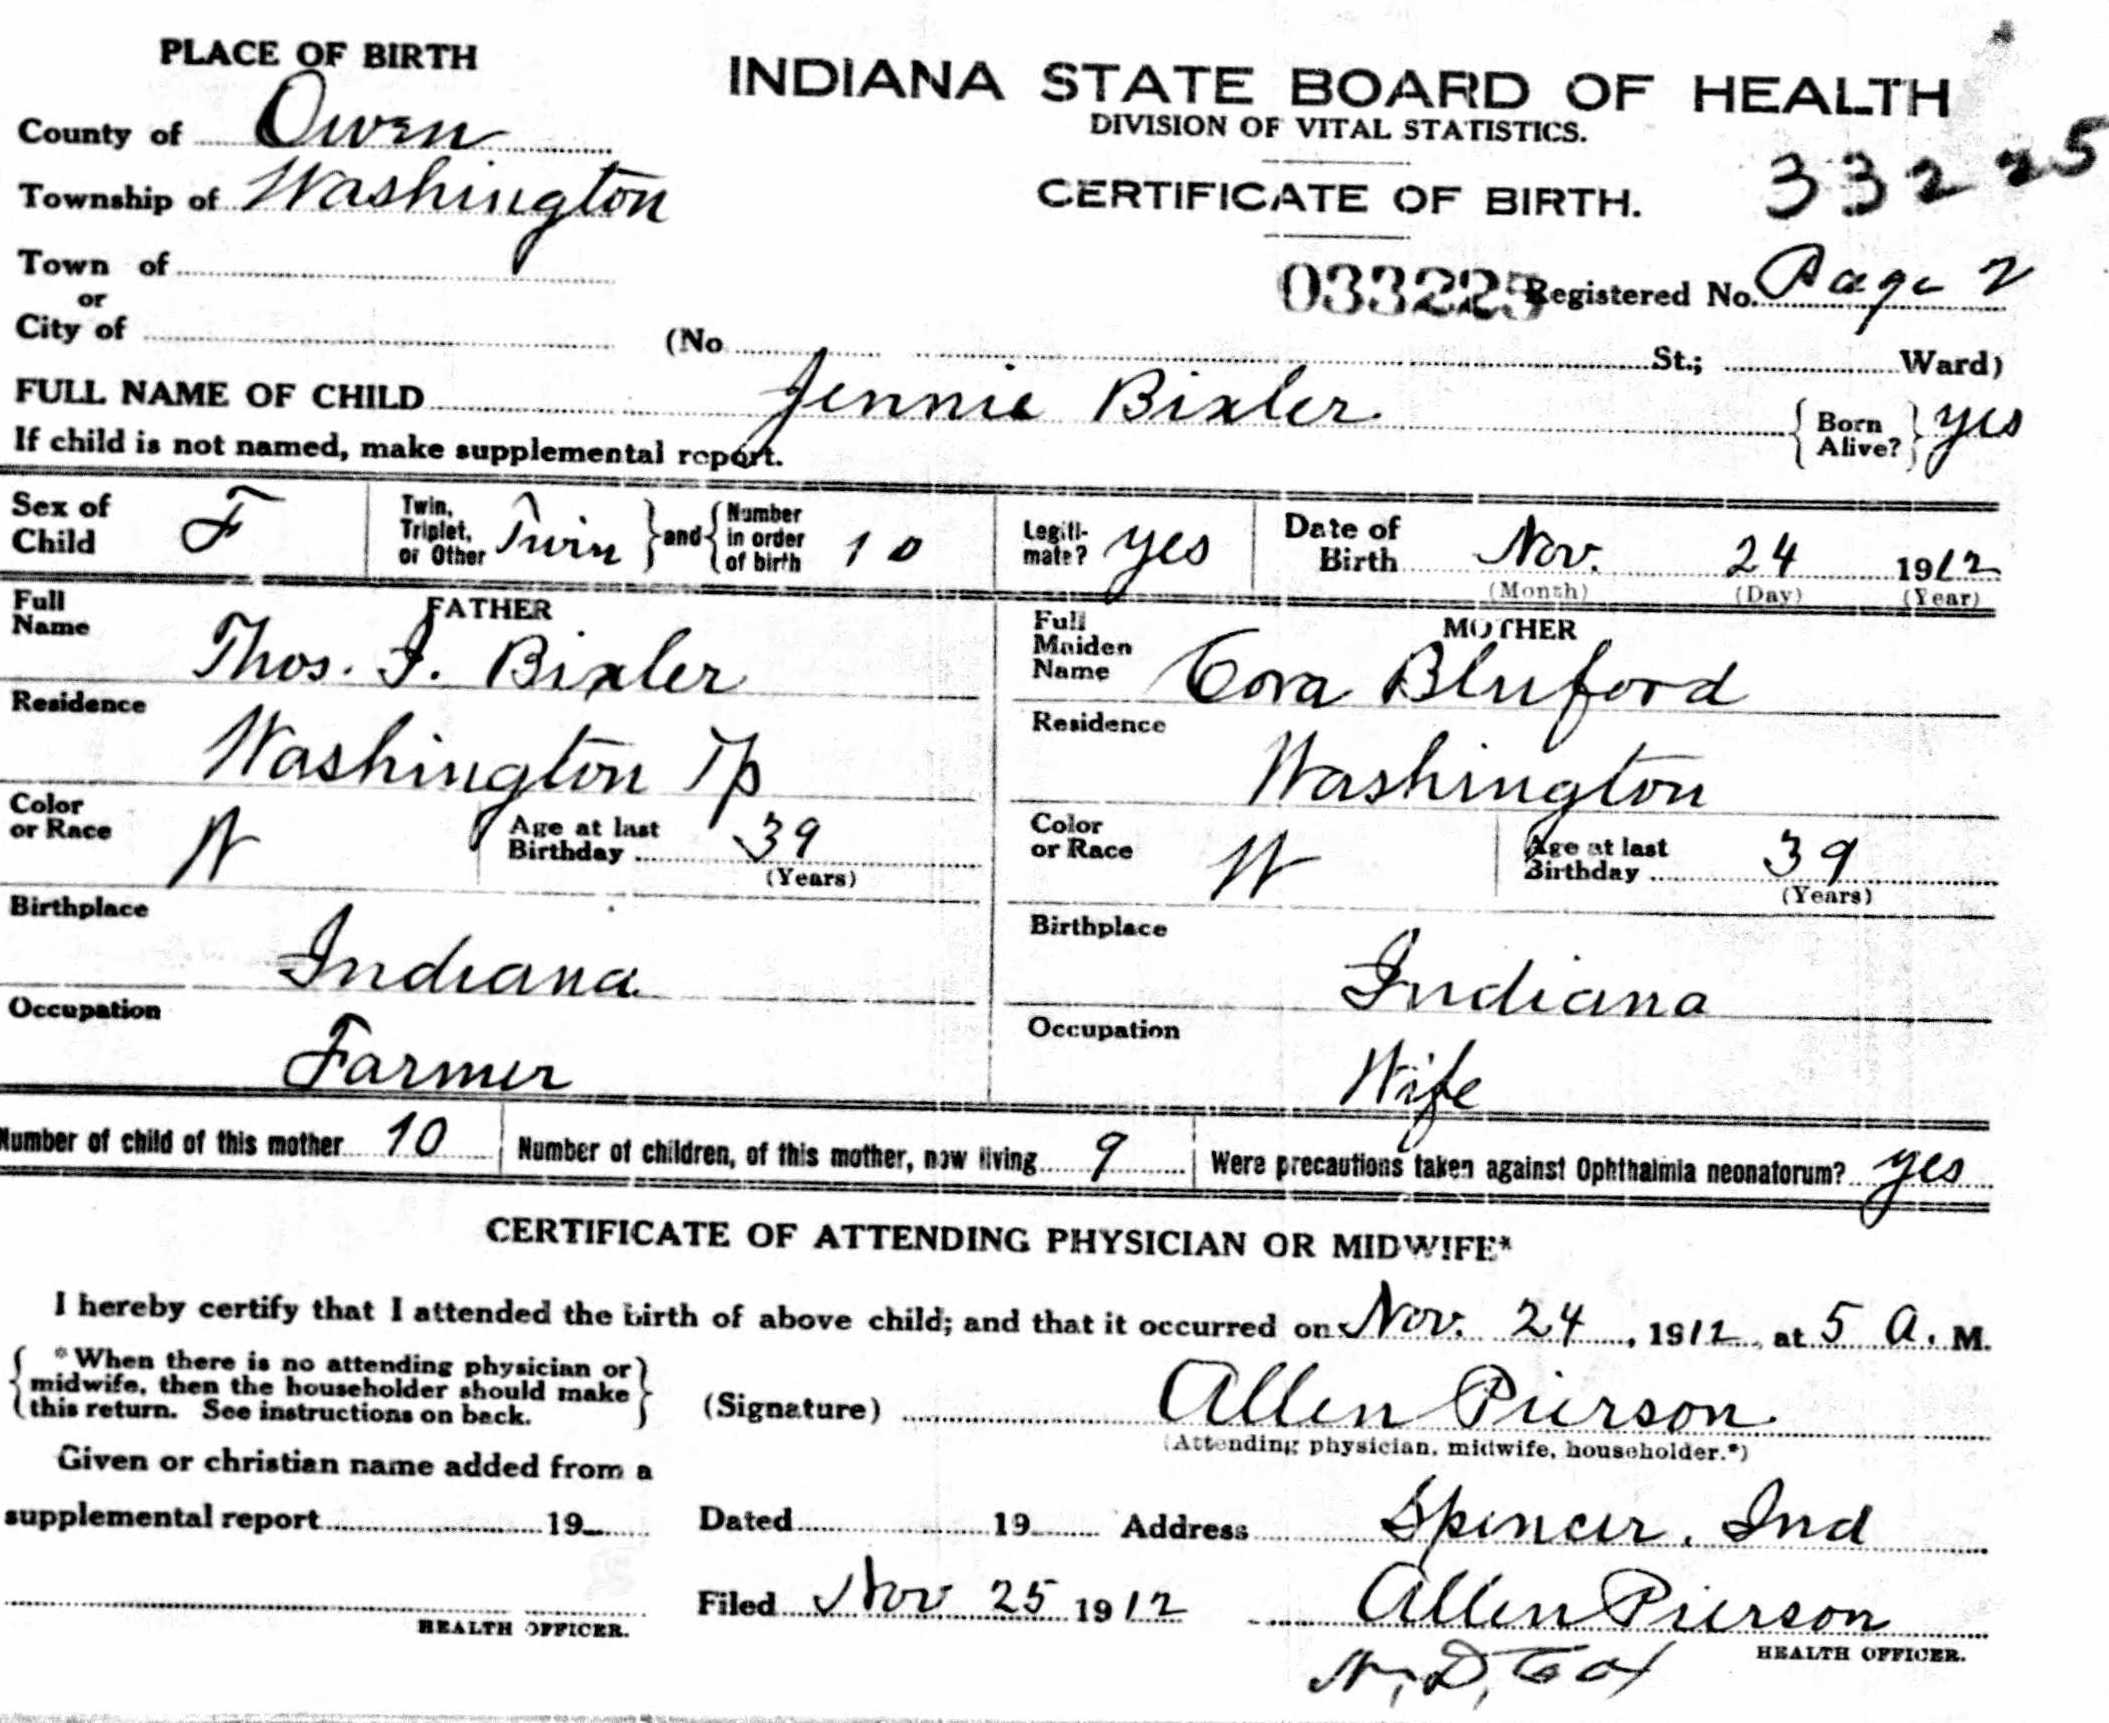 Jennie Bixler - Birth Certificate